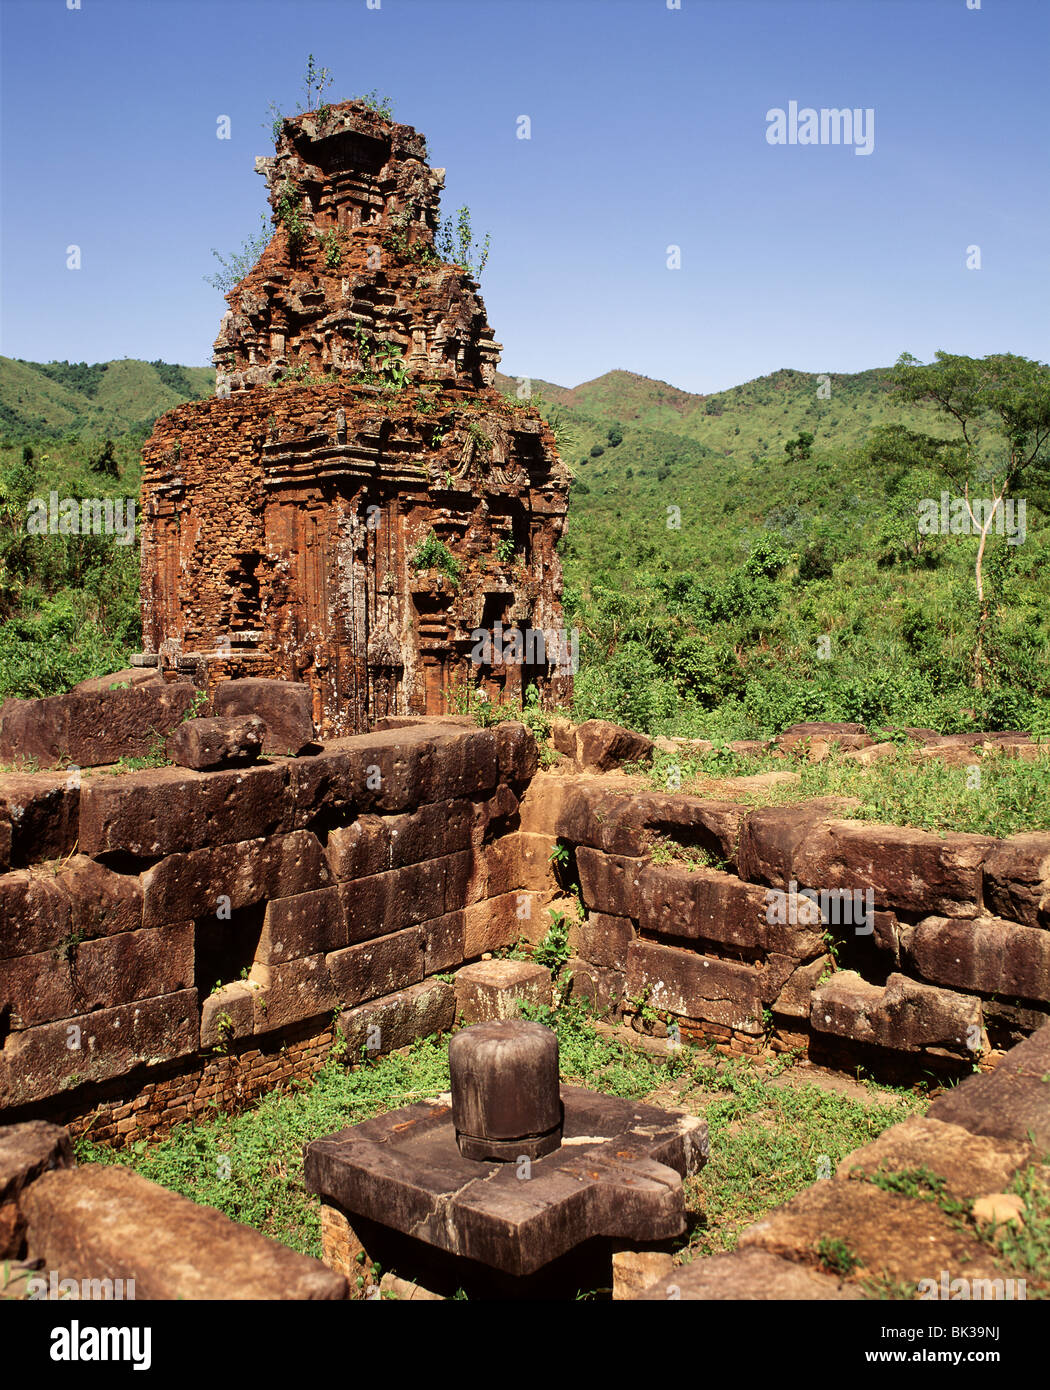 Ruins of the Cham sanctuary of My Son, dating from the 7th to 10th centuries, Vietnam, Indochina, Southeast Asia, Stock Photo